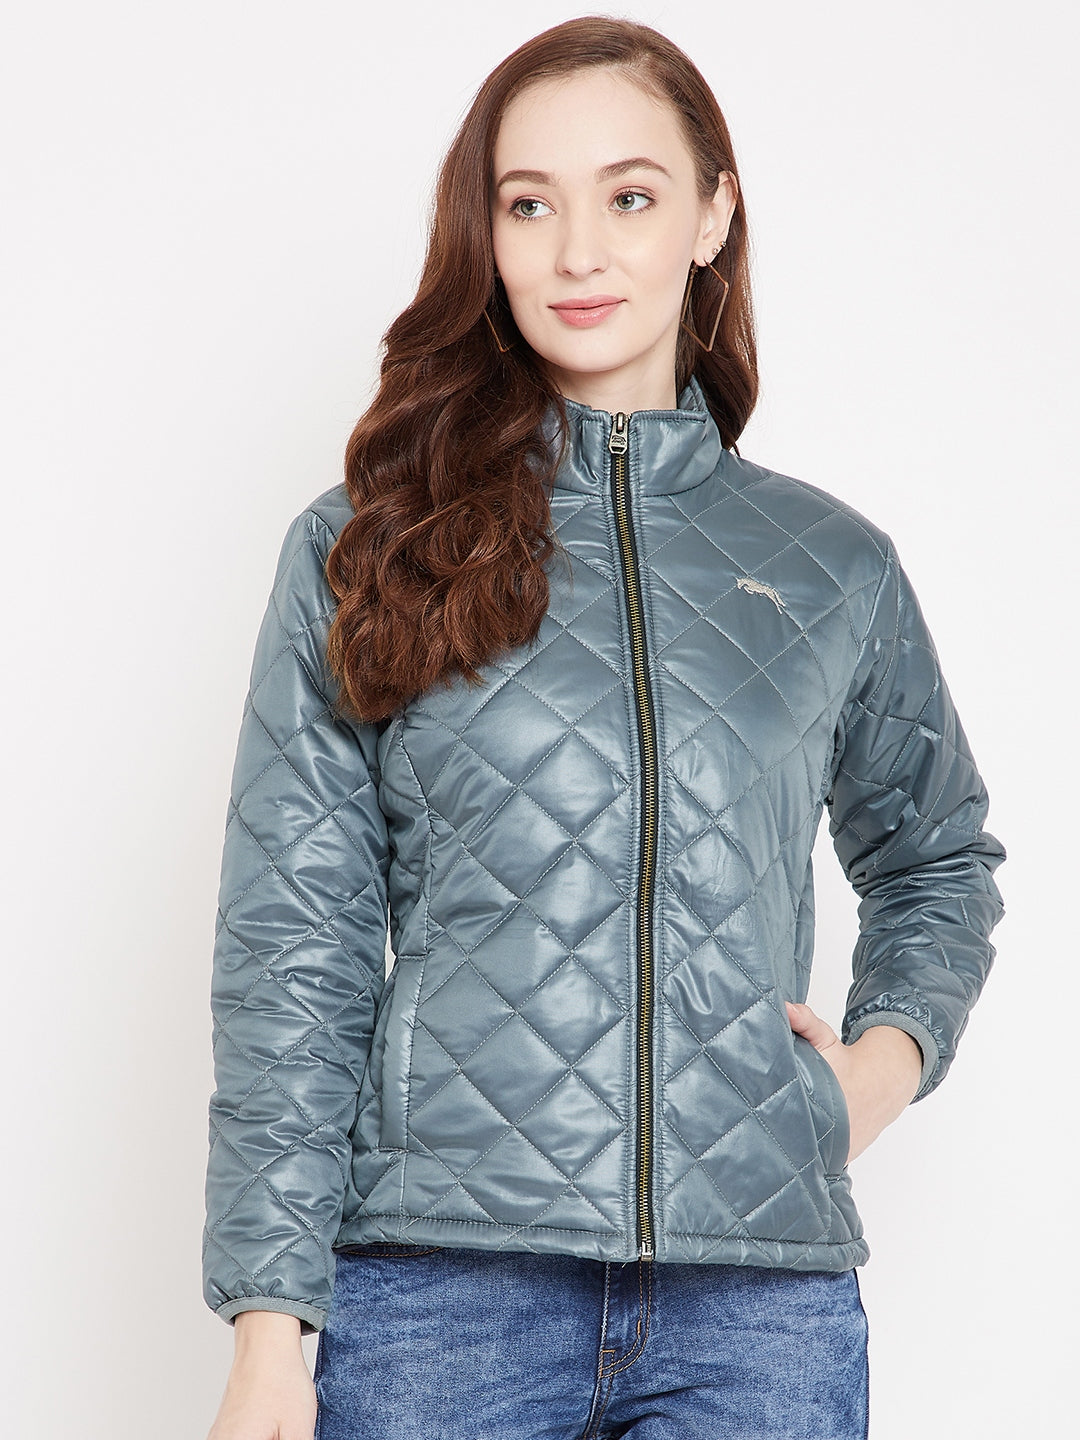 JUMP USA Women Grey Quilted Jackets